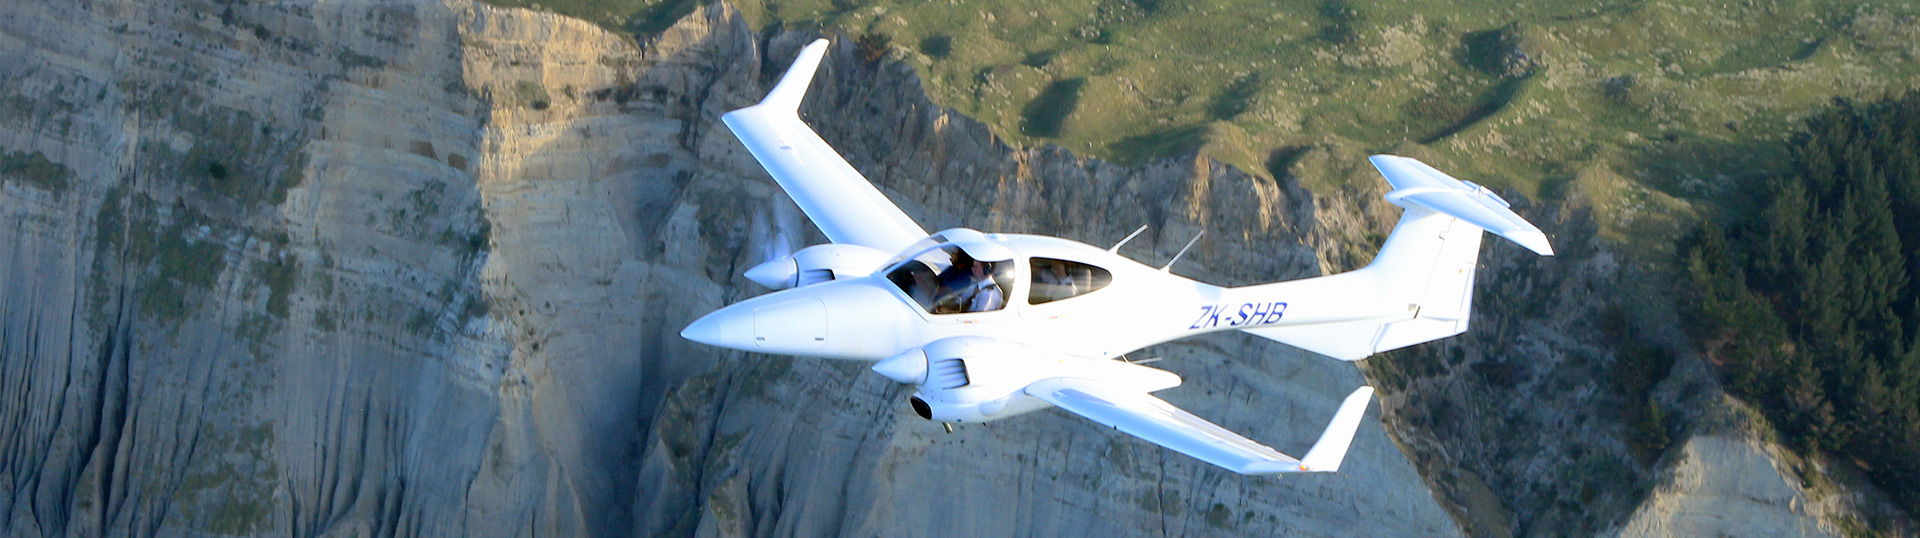 SHB Air to Air Cape Kidnappers twin engined flight training